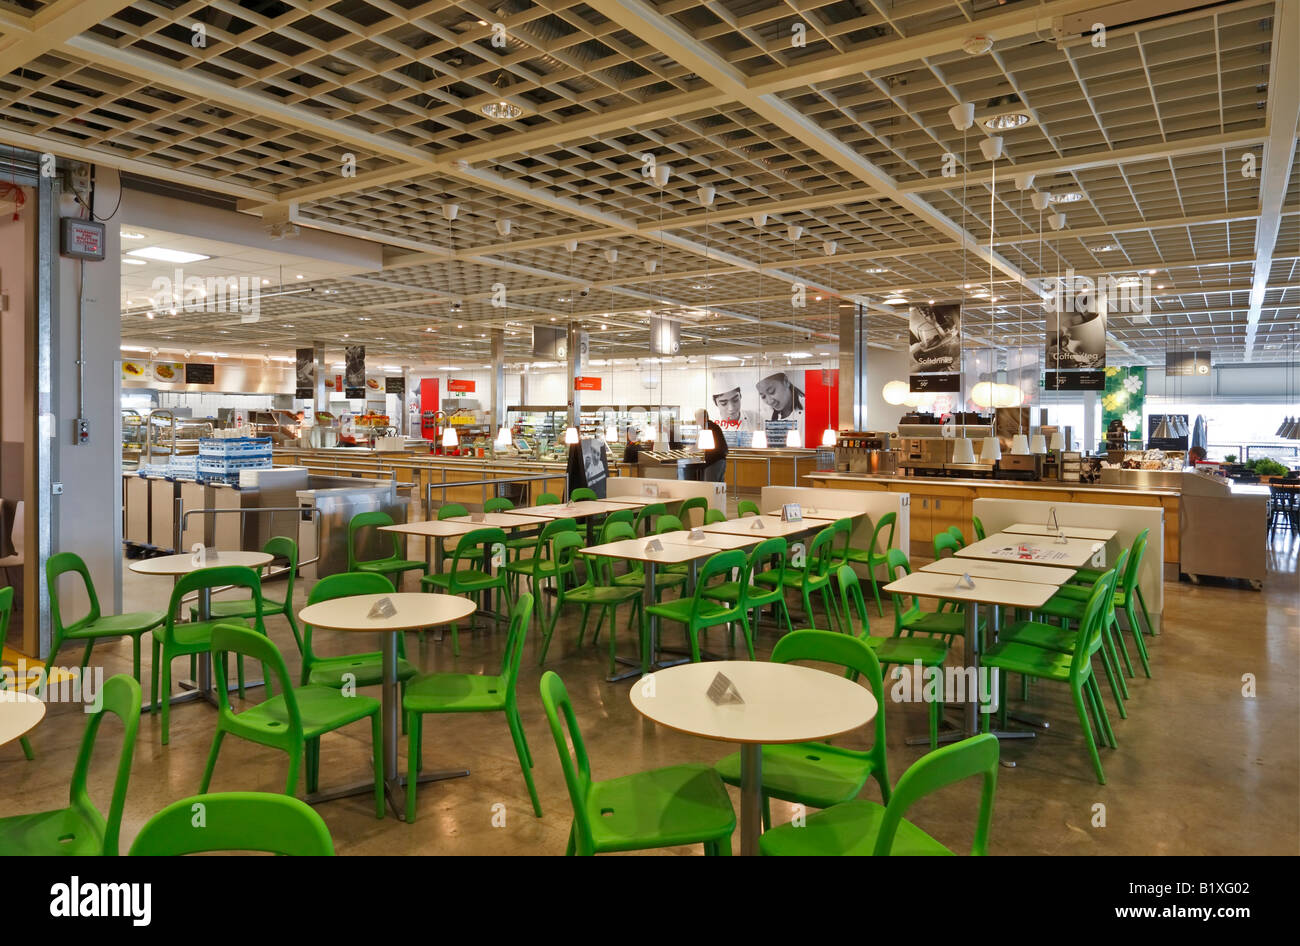 Ikea stock photos images alamy